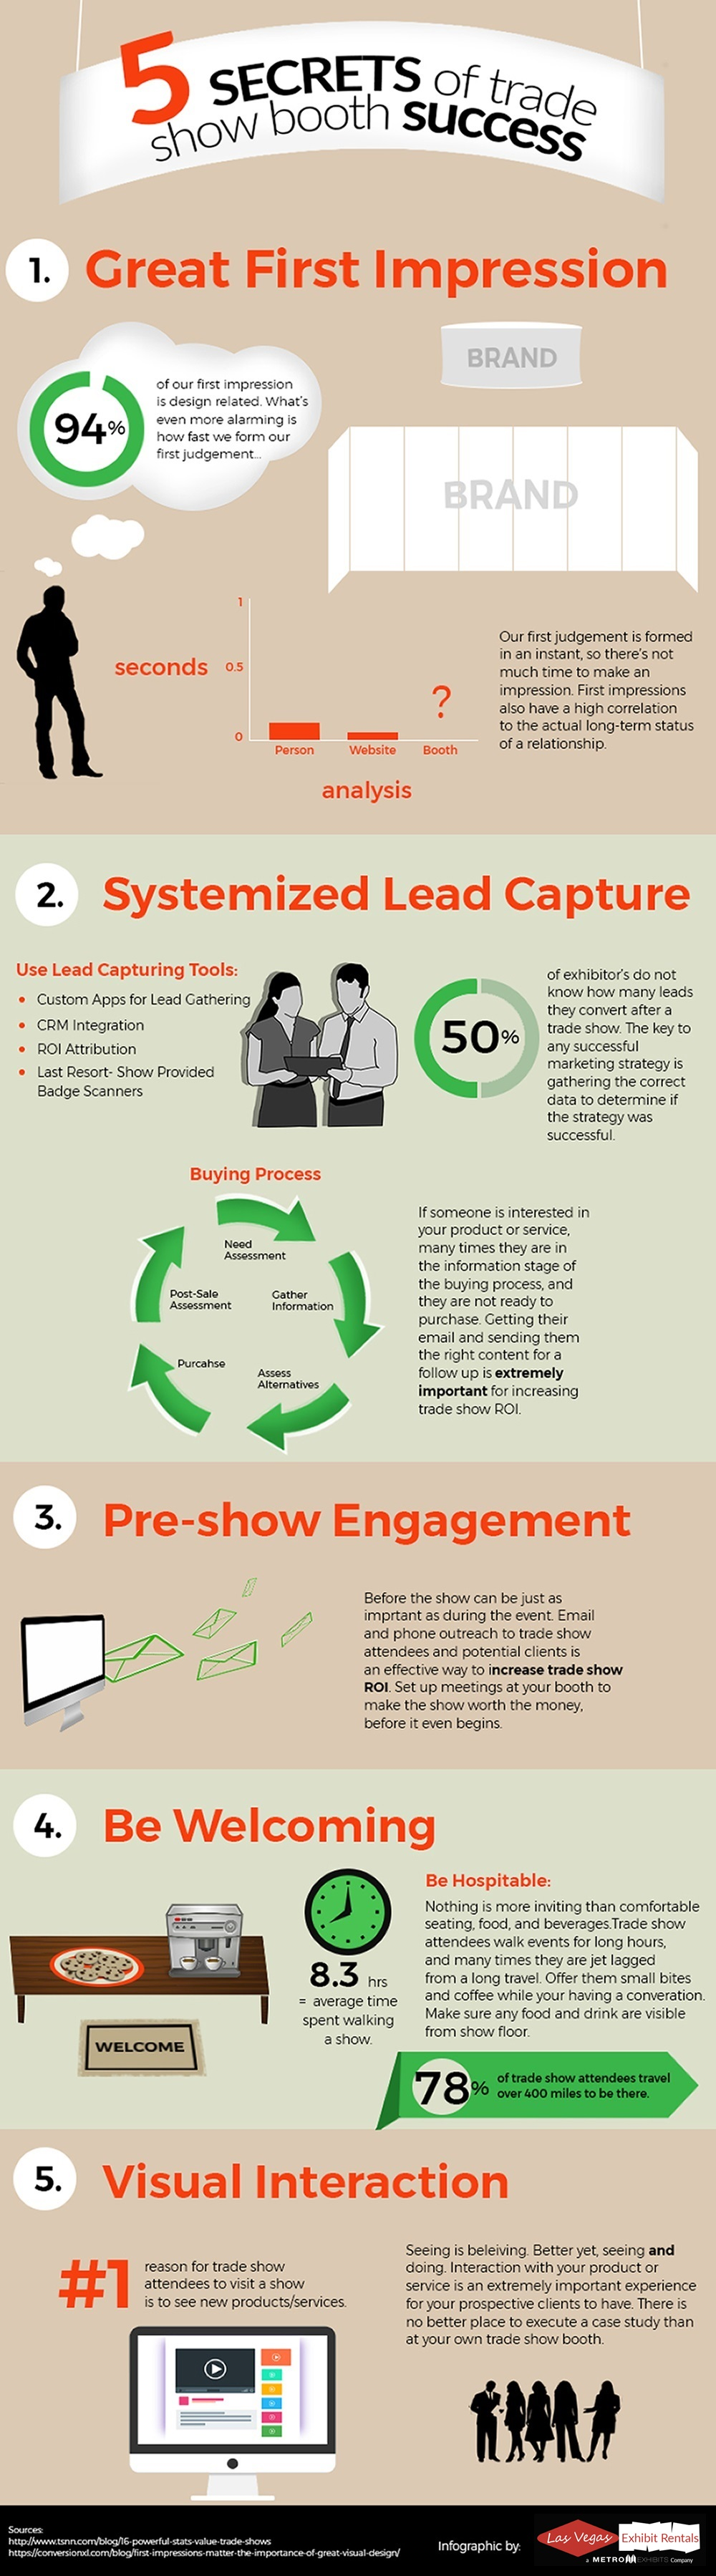 vegas-Trade-show-booth-ideas-infographic